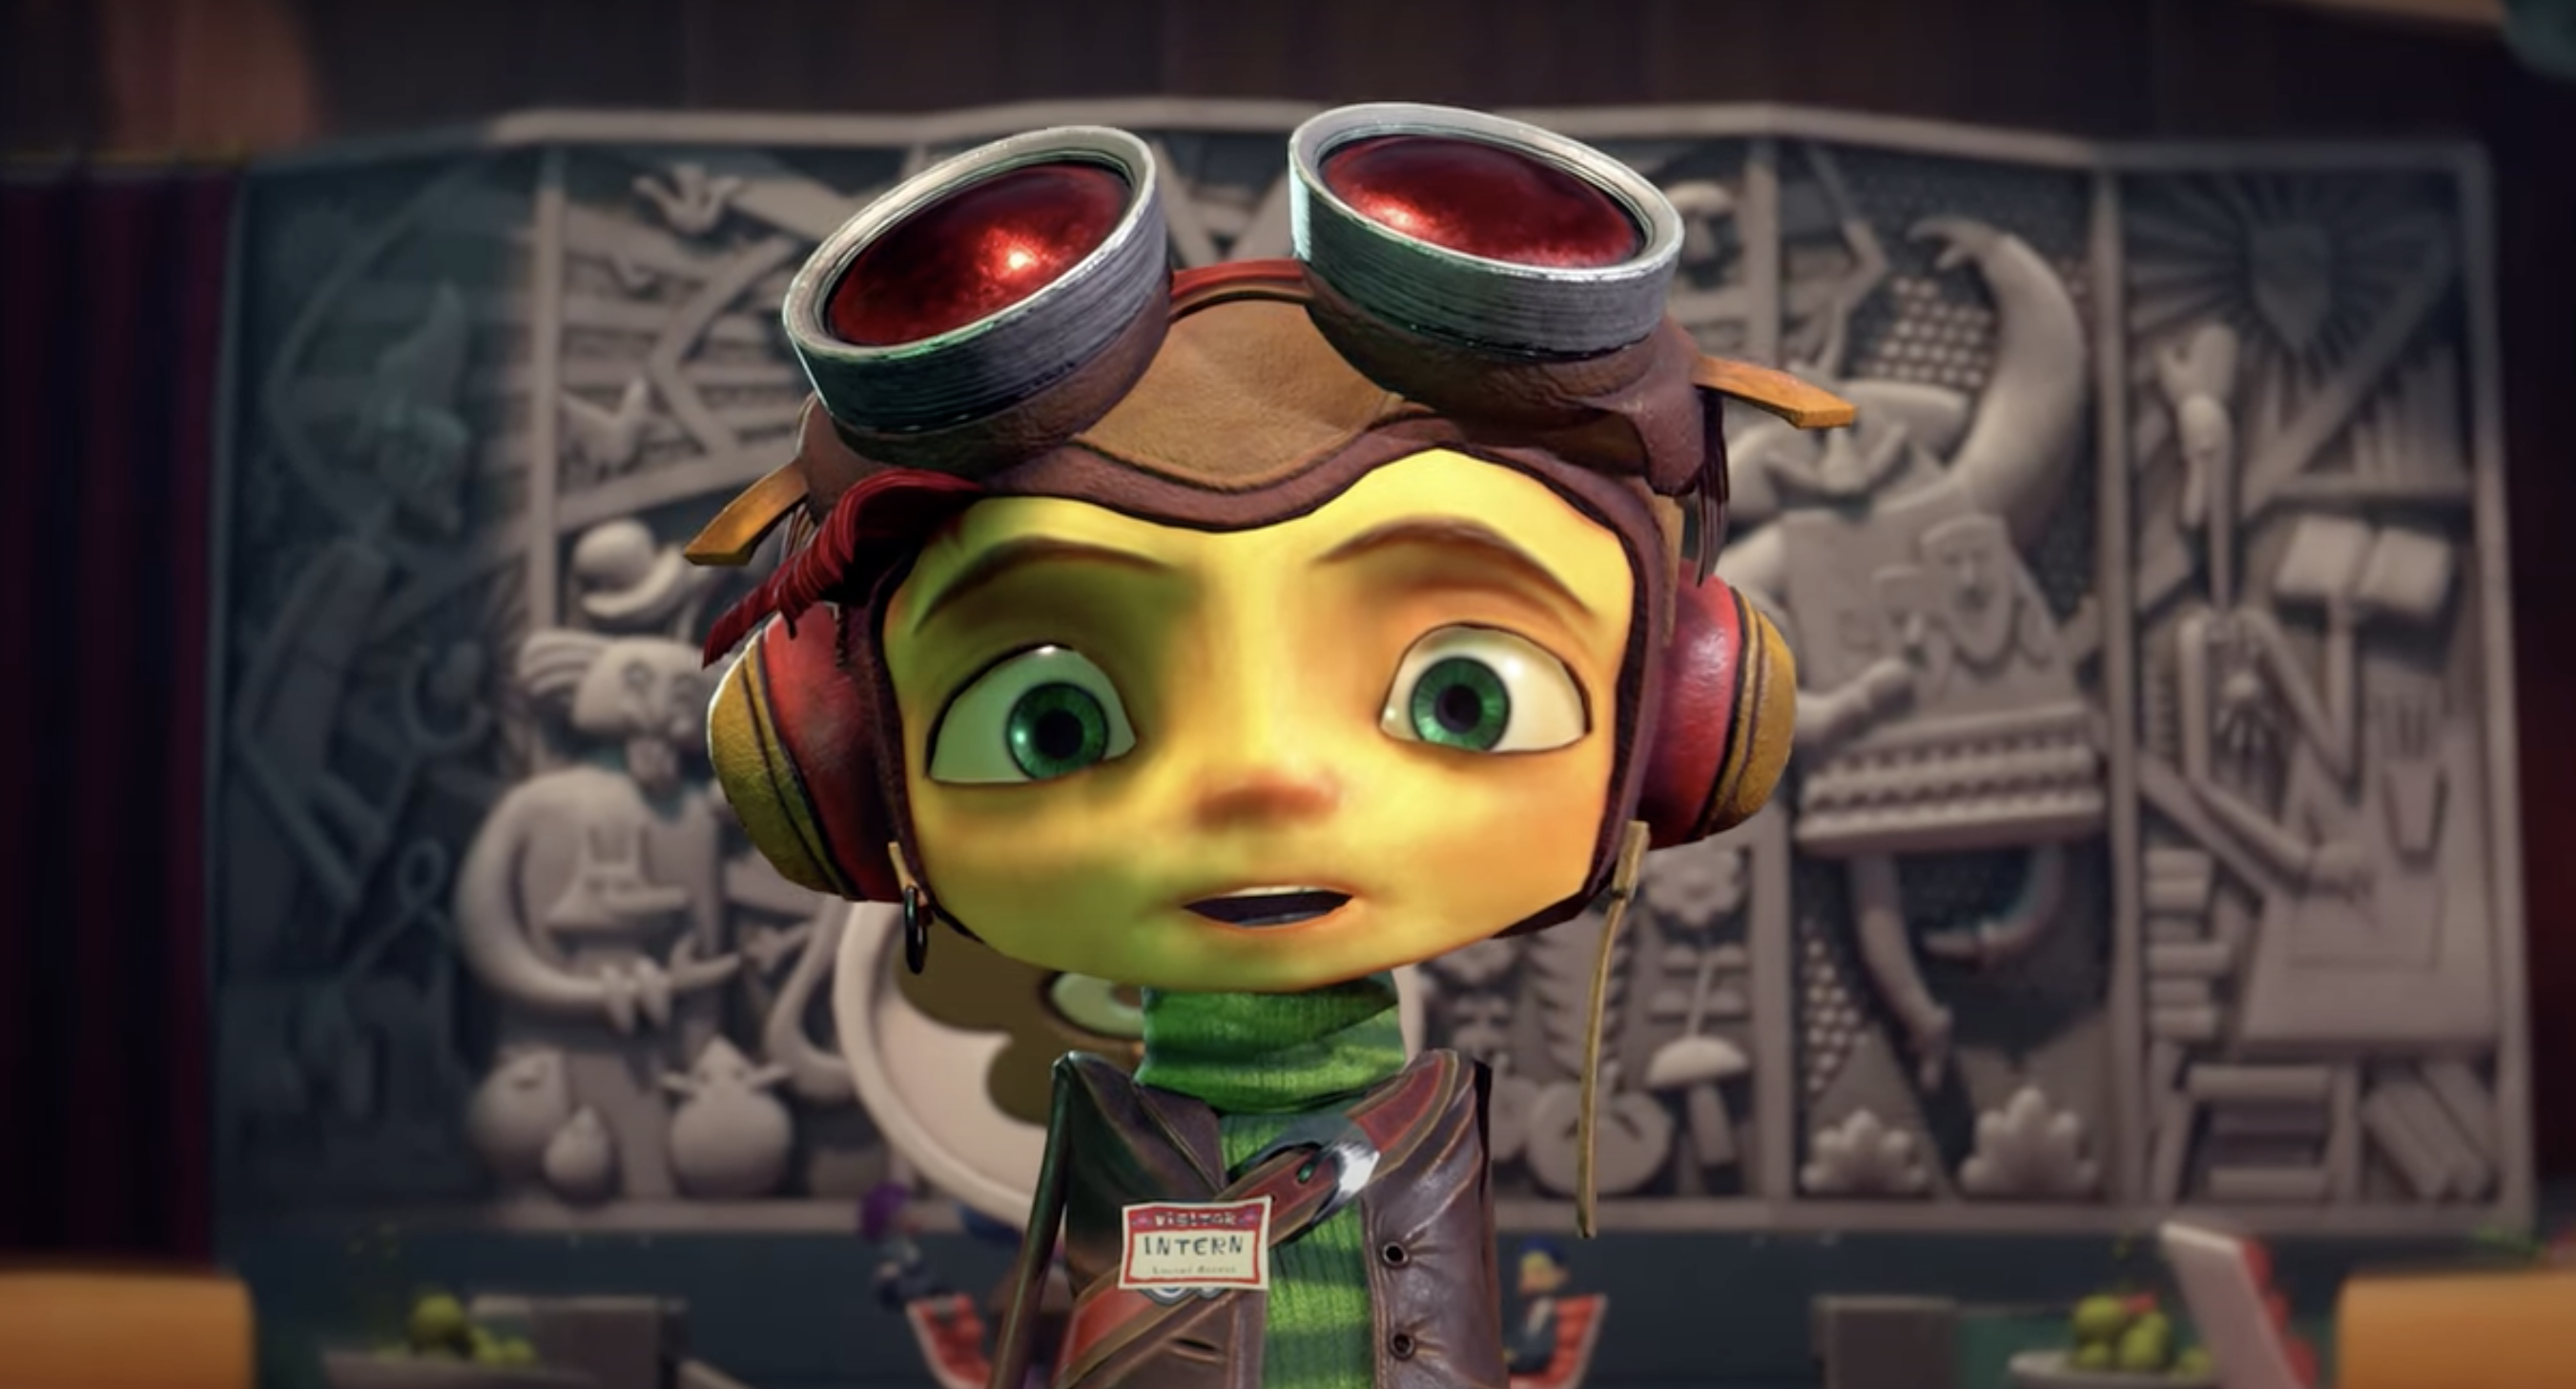 'Psychonauts 2' finally arrives on August 25, 2021   Engadget